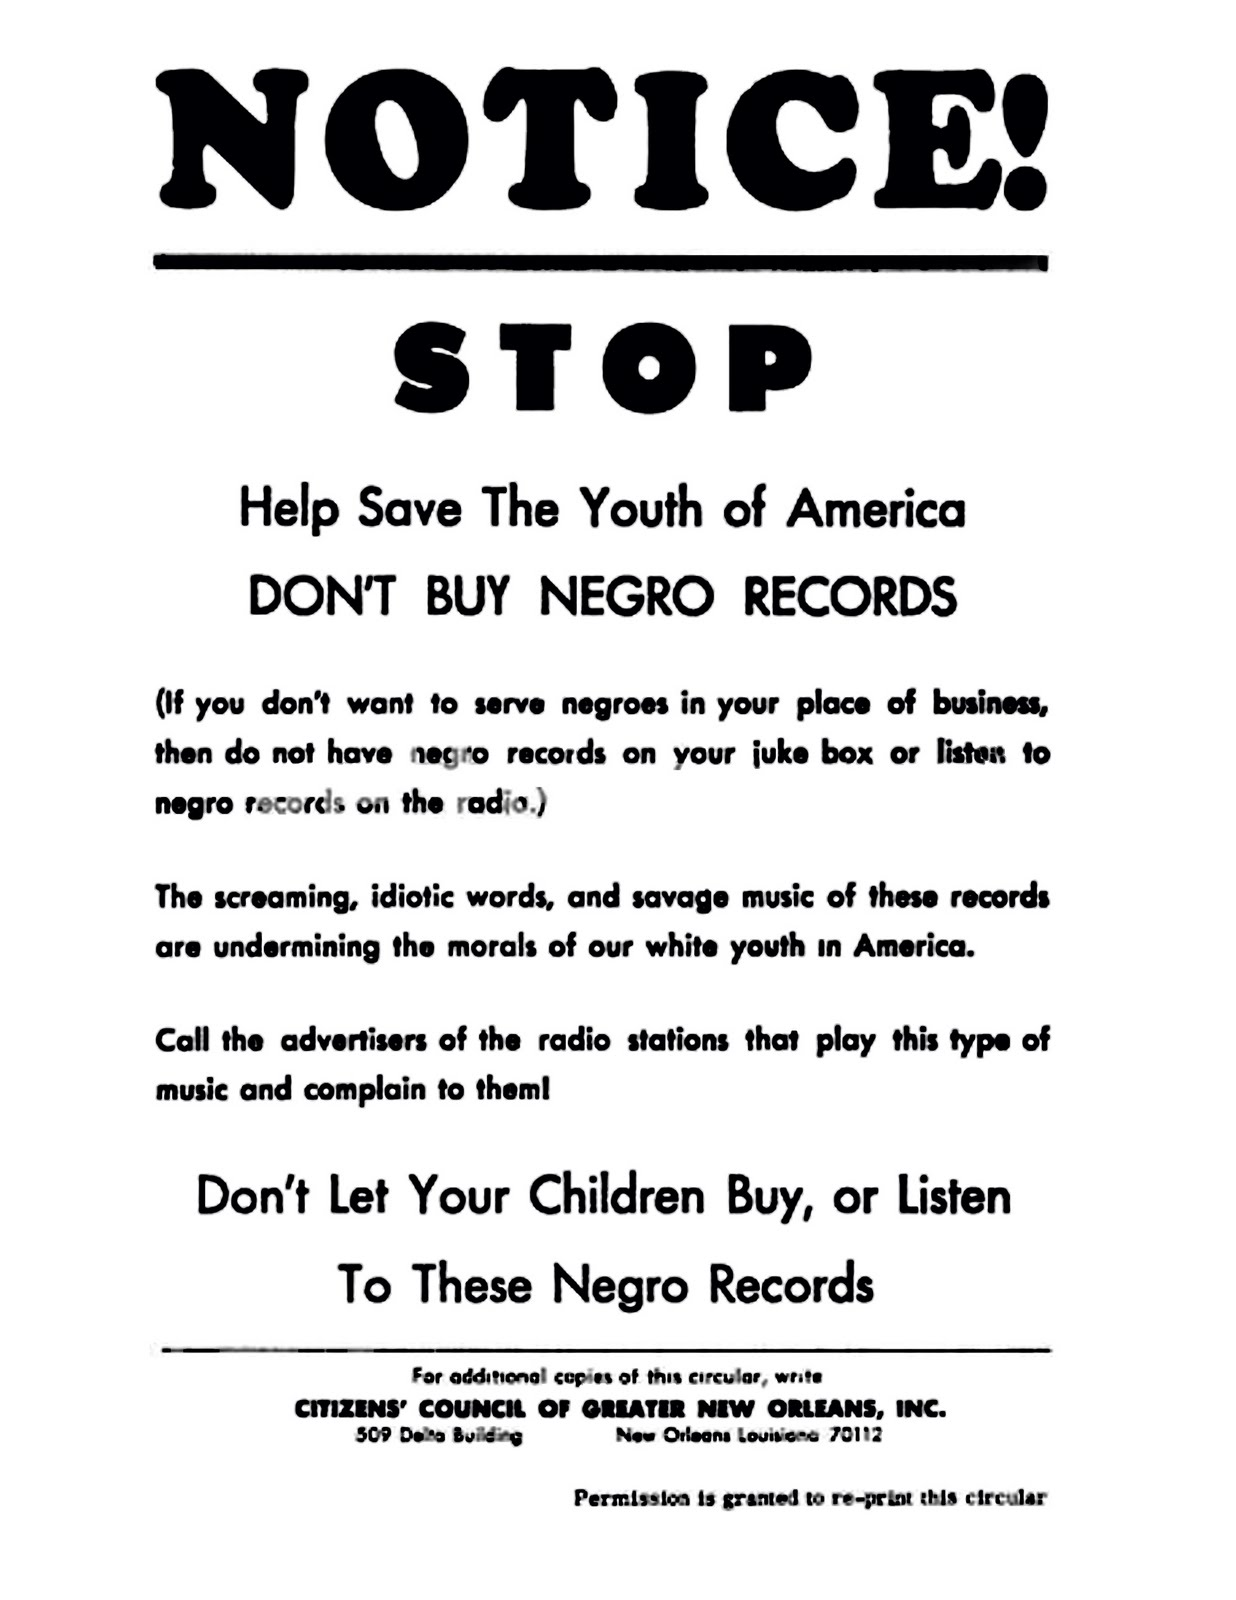 Notice Stop Help save the youth of America Don't buy Negro records